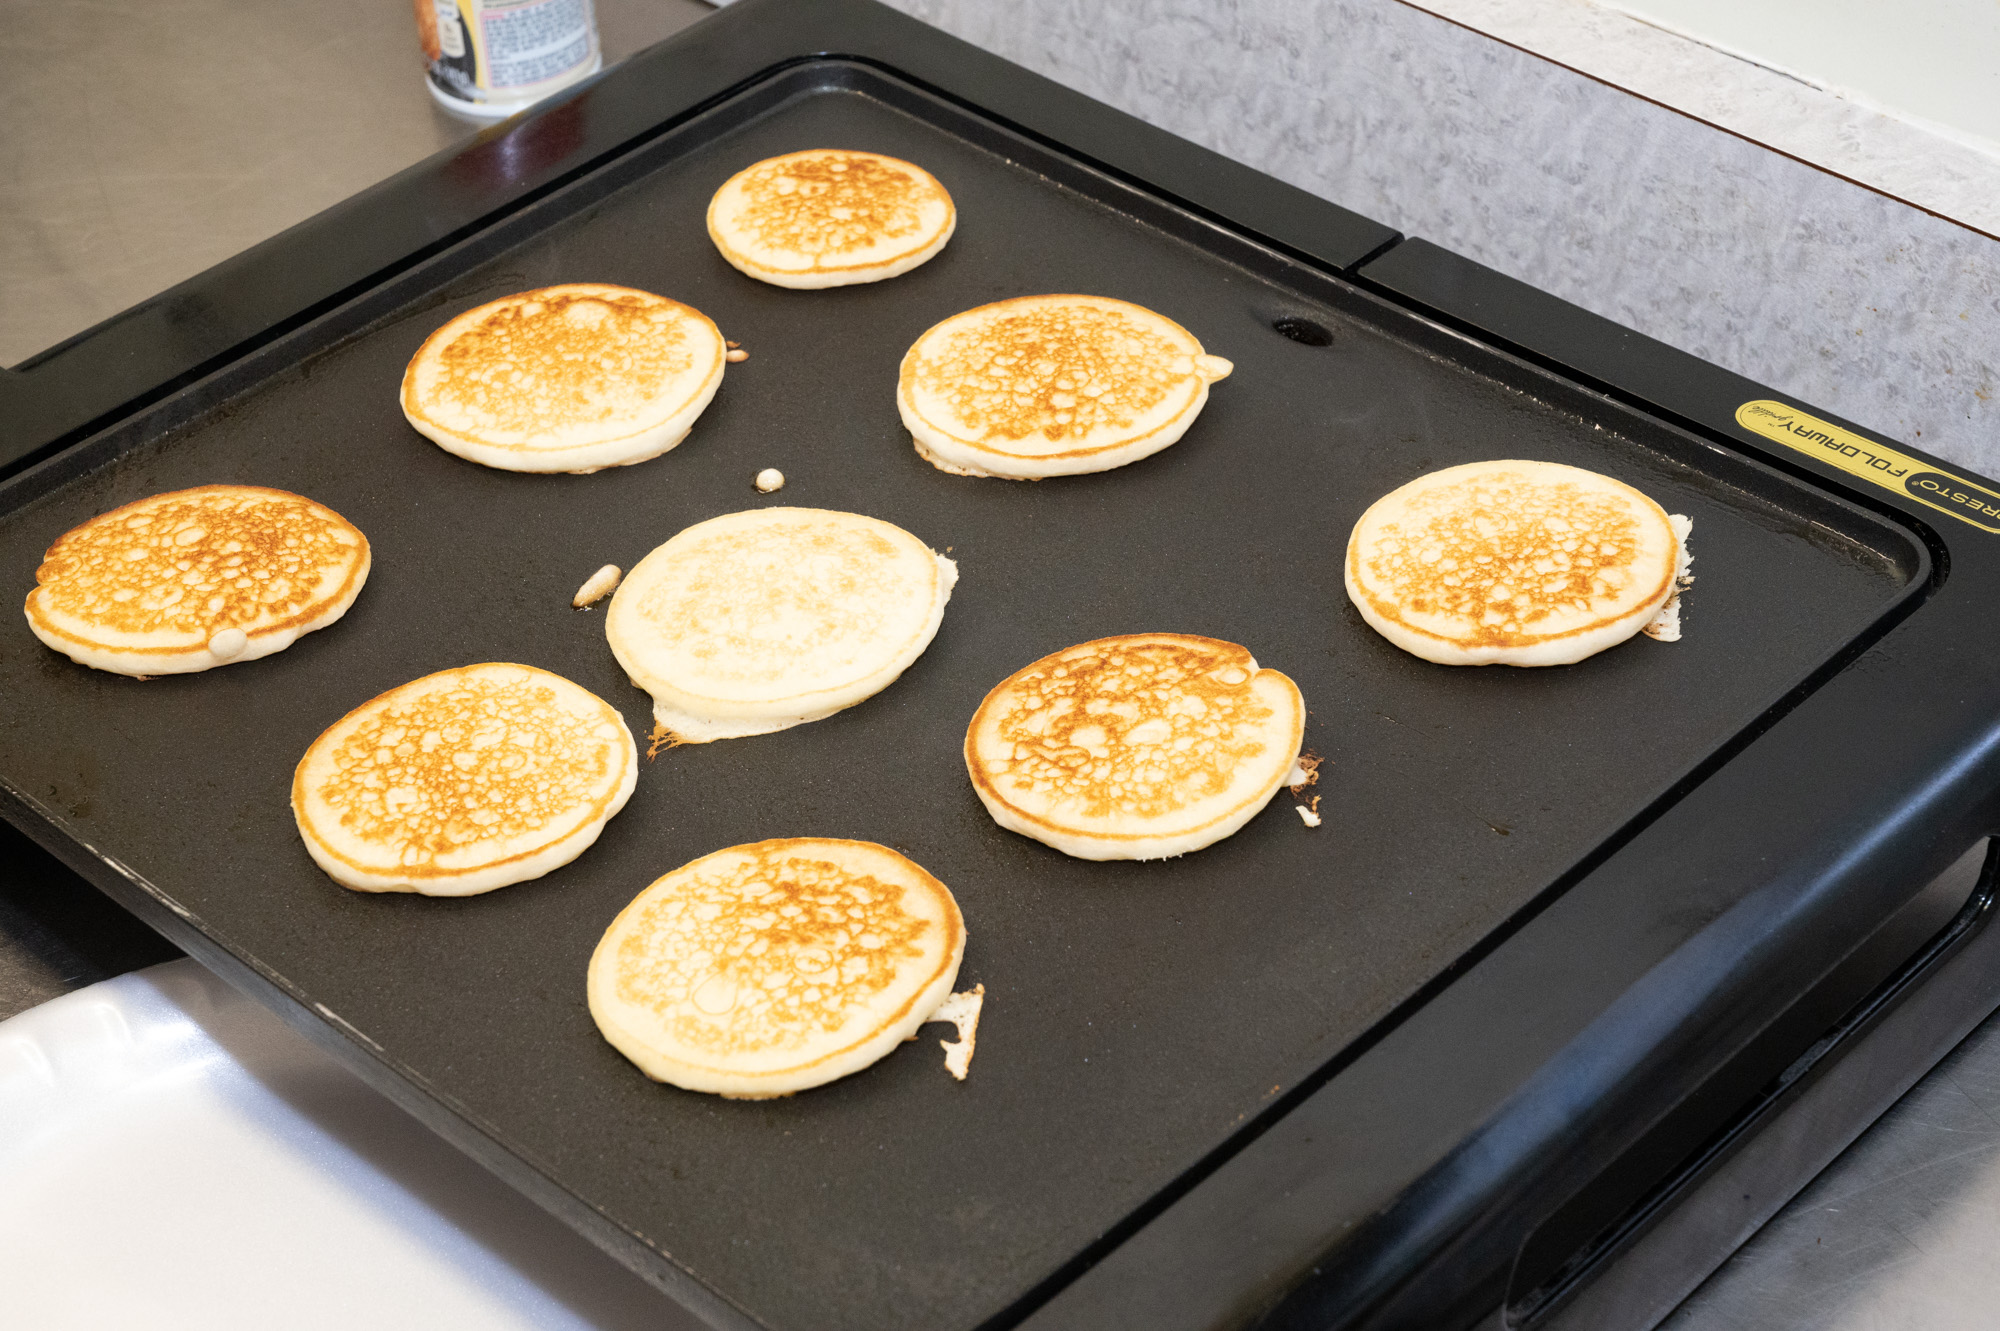 Nice batch of small pancakes.